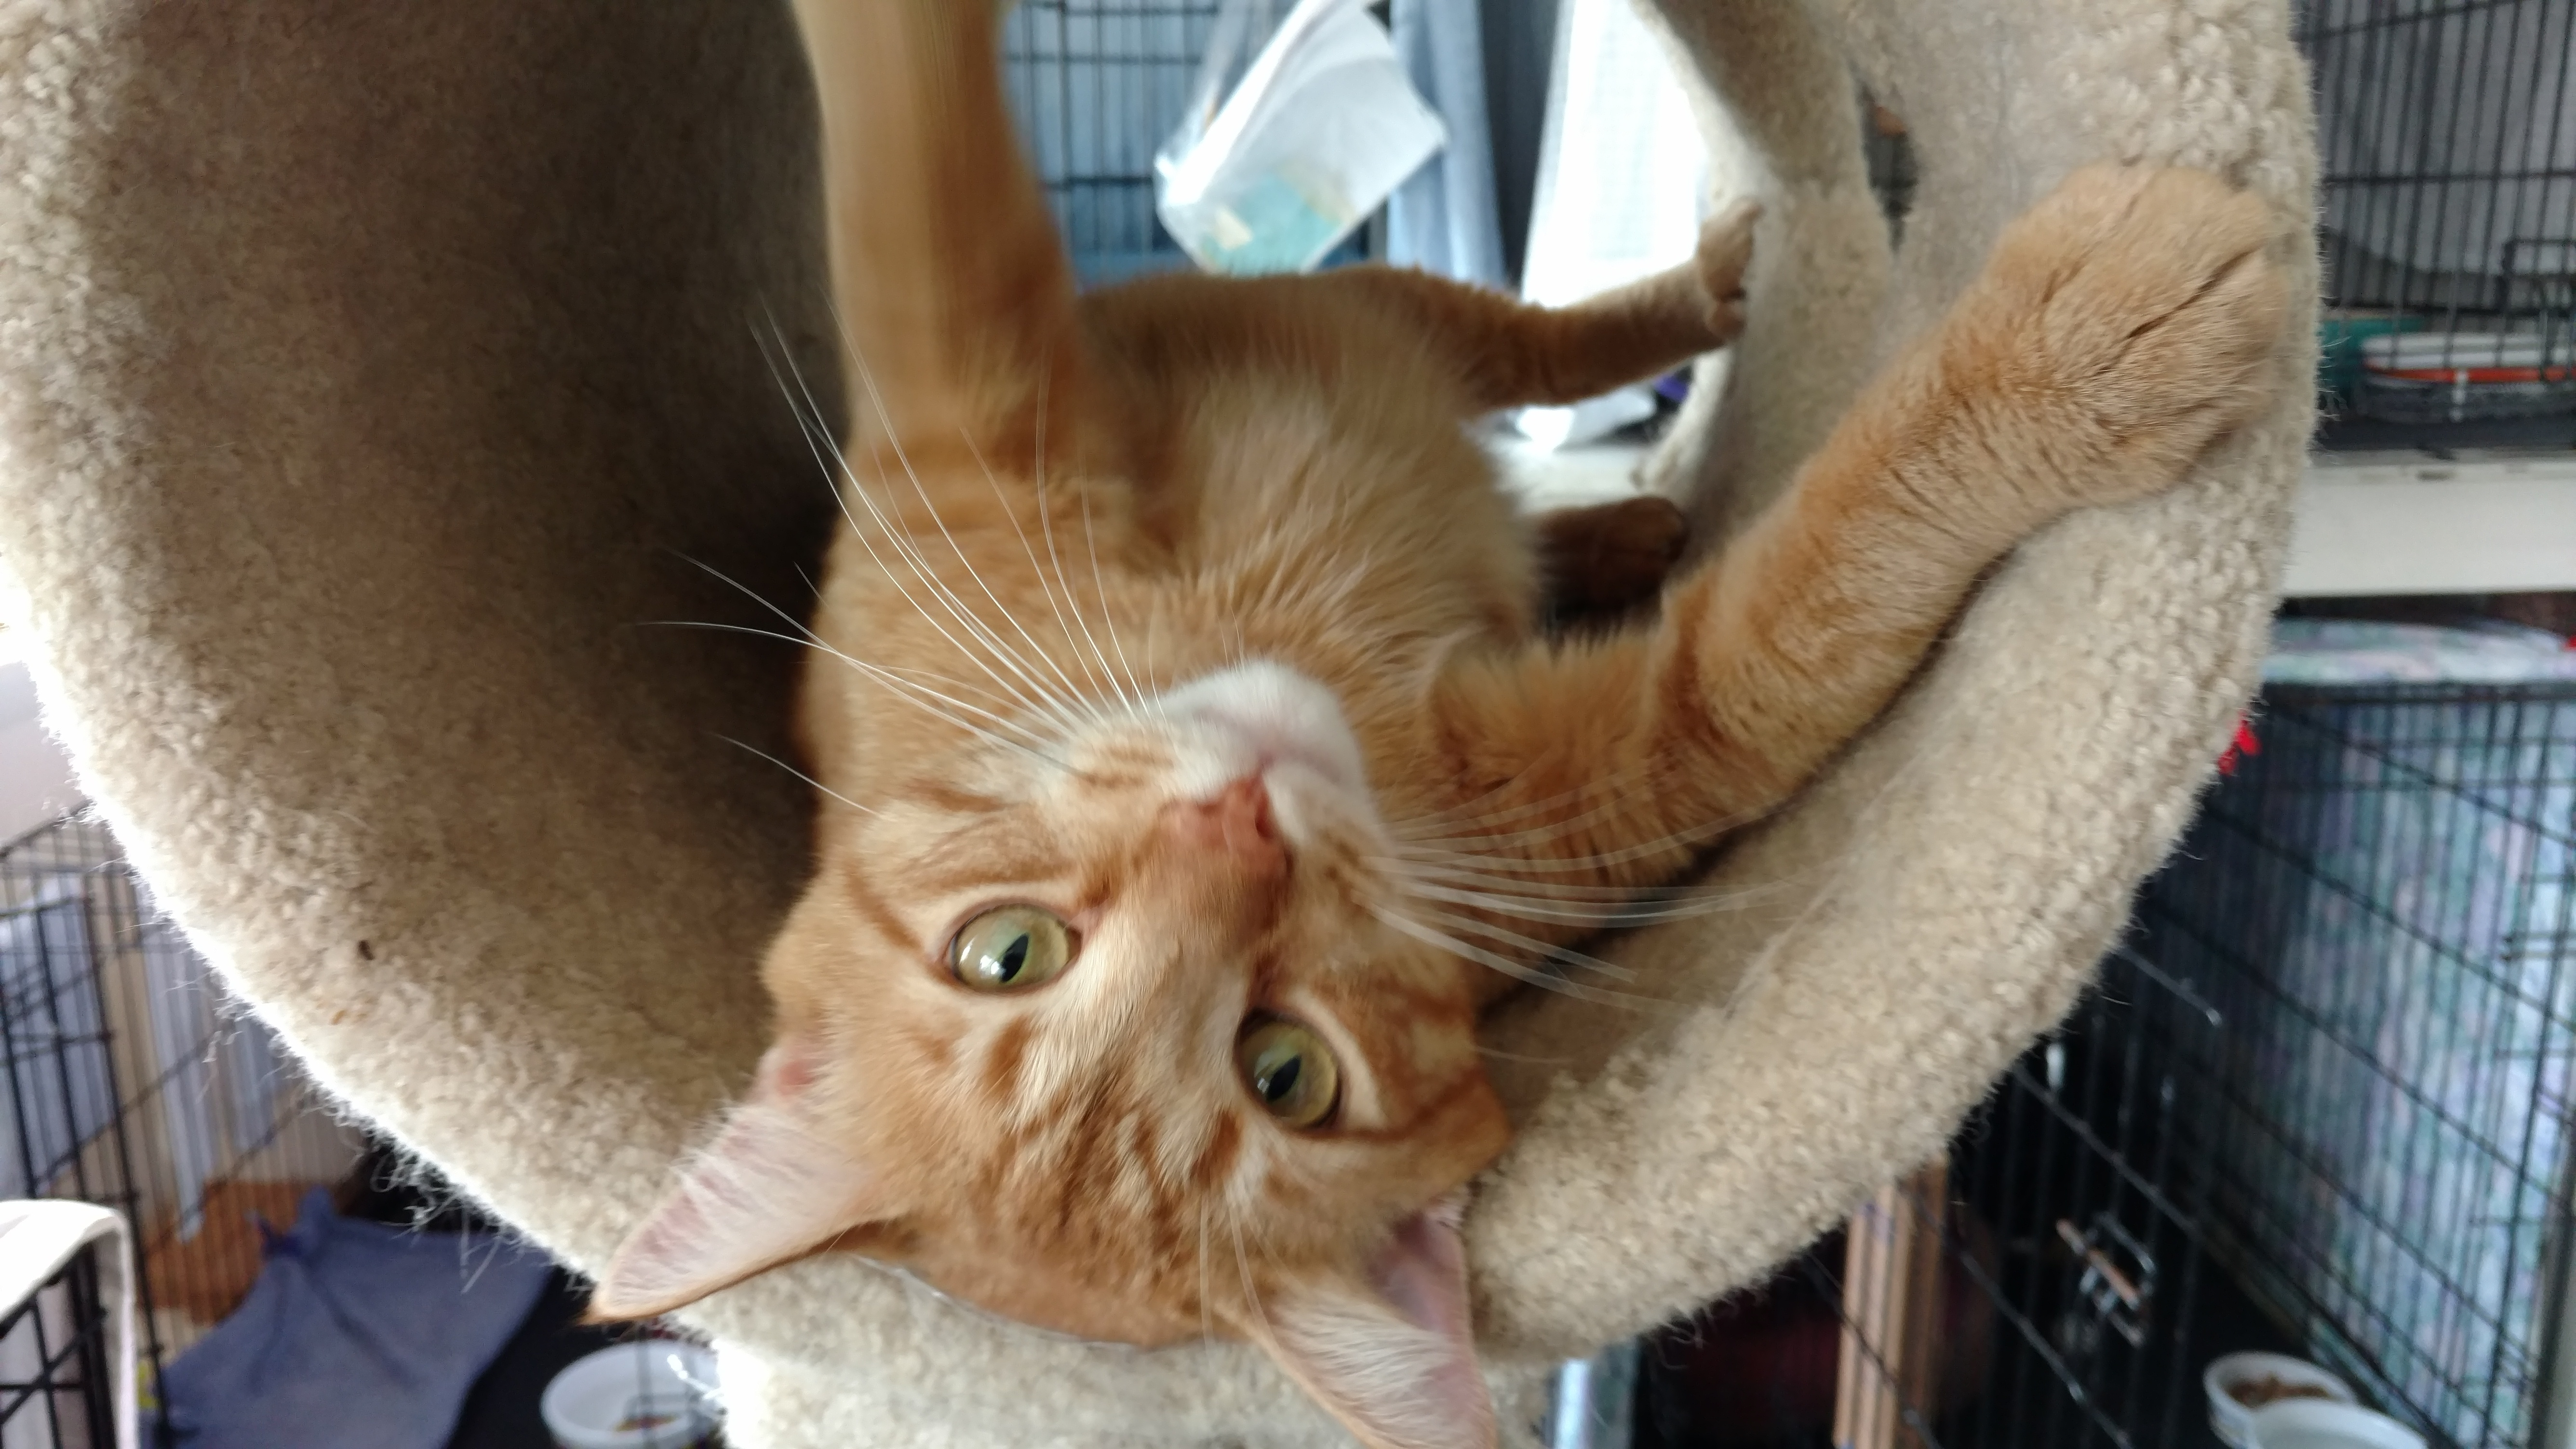 Pets for Adoption at Susans Cats and Kittens in Churchville PA